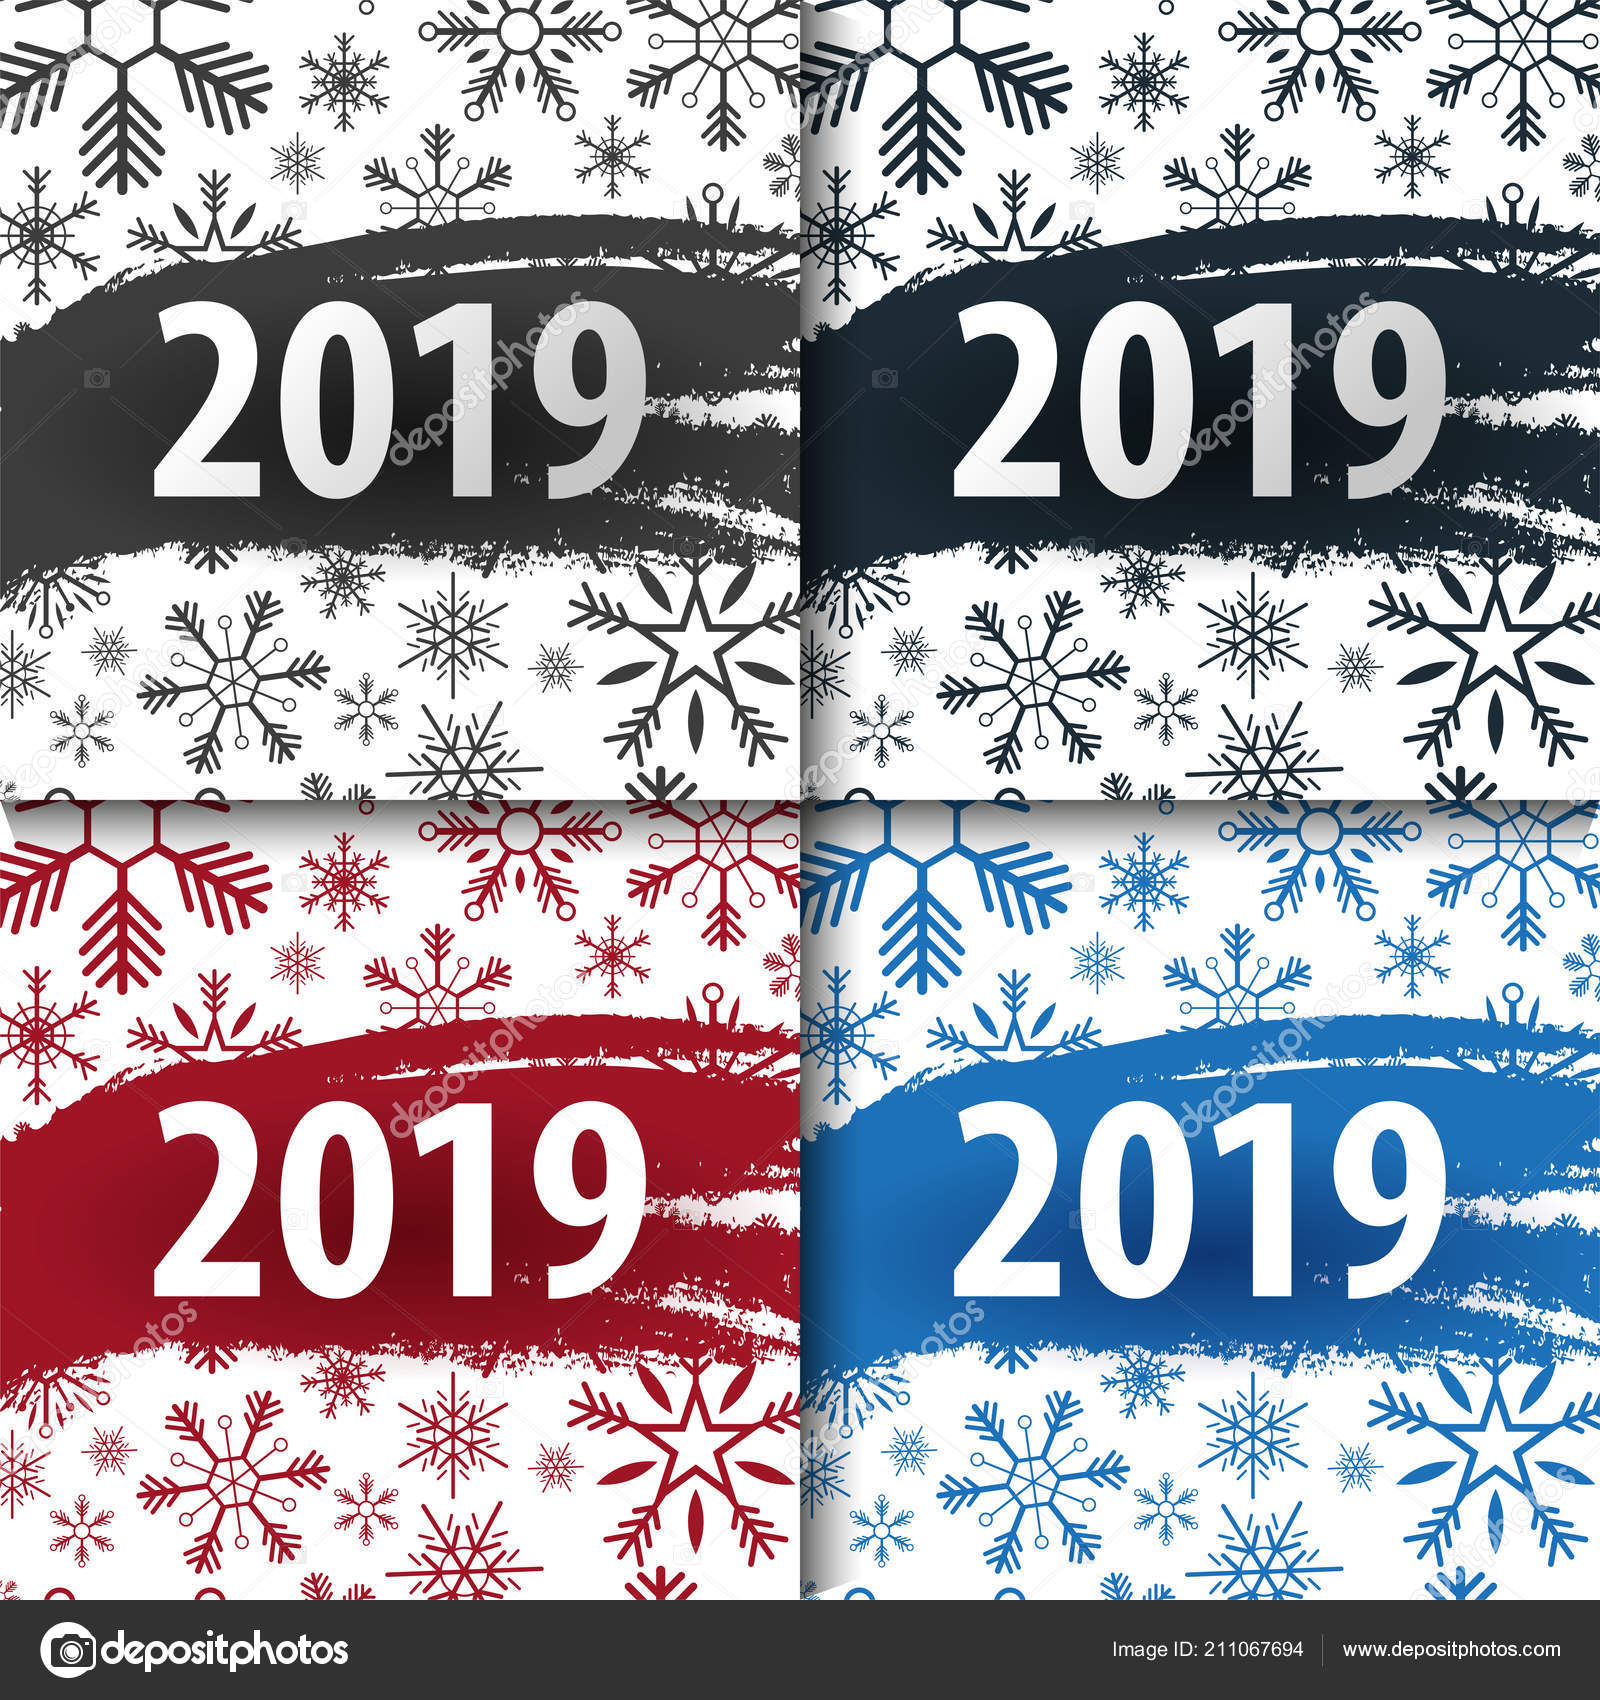 2019 happy new year background with snowflakes for your seasonal flyers and greetings card or christmas themed invitations vector by leo_design